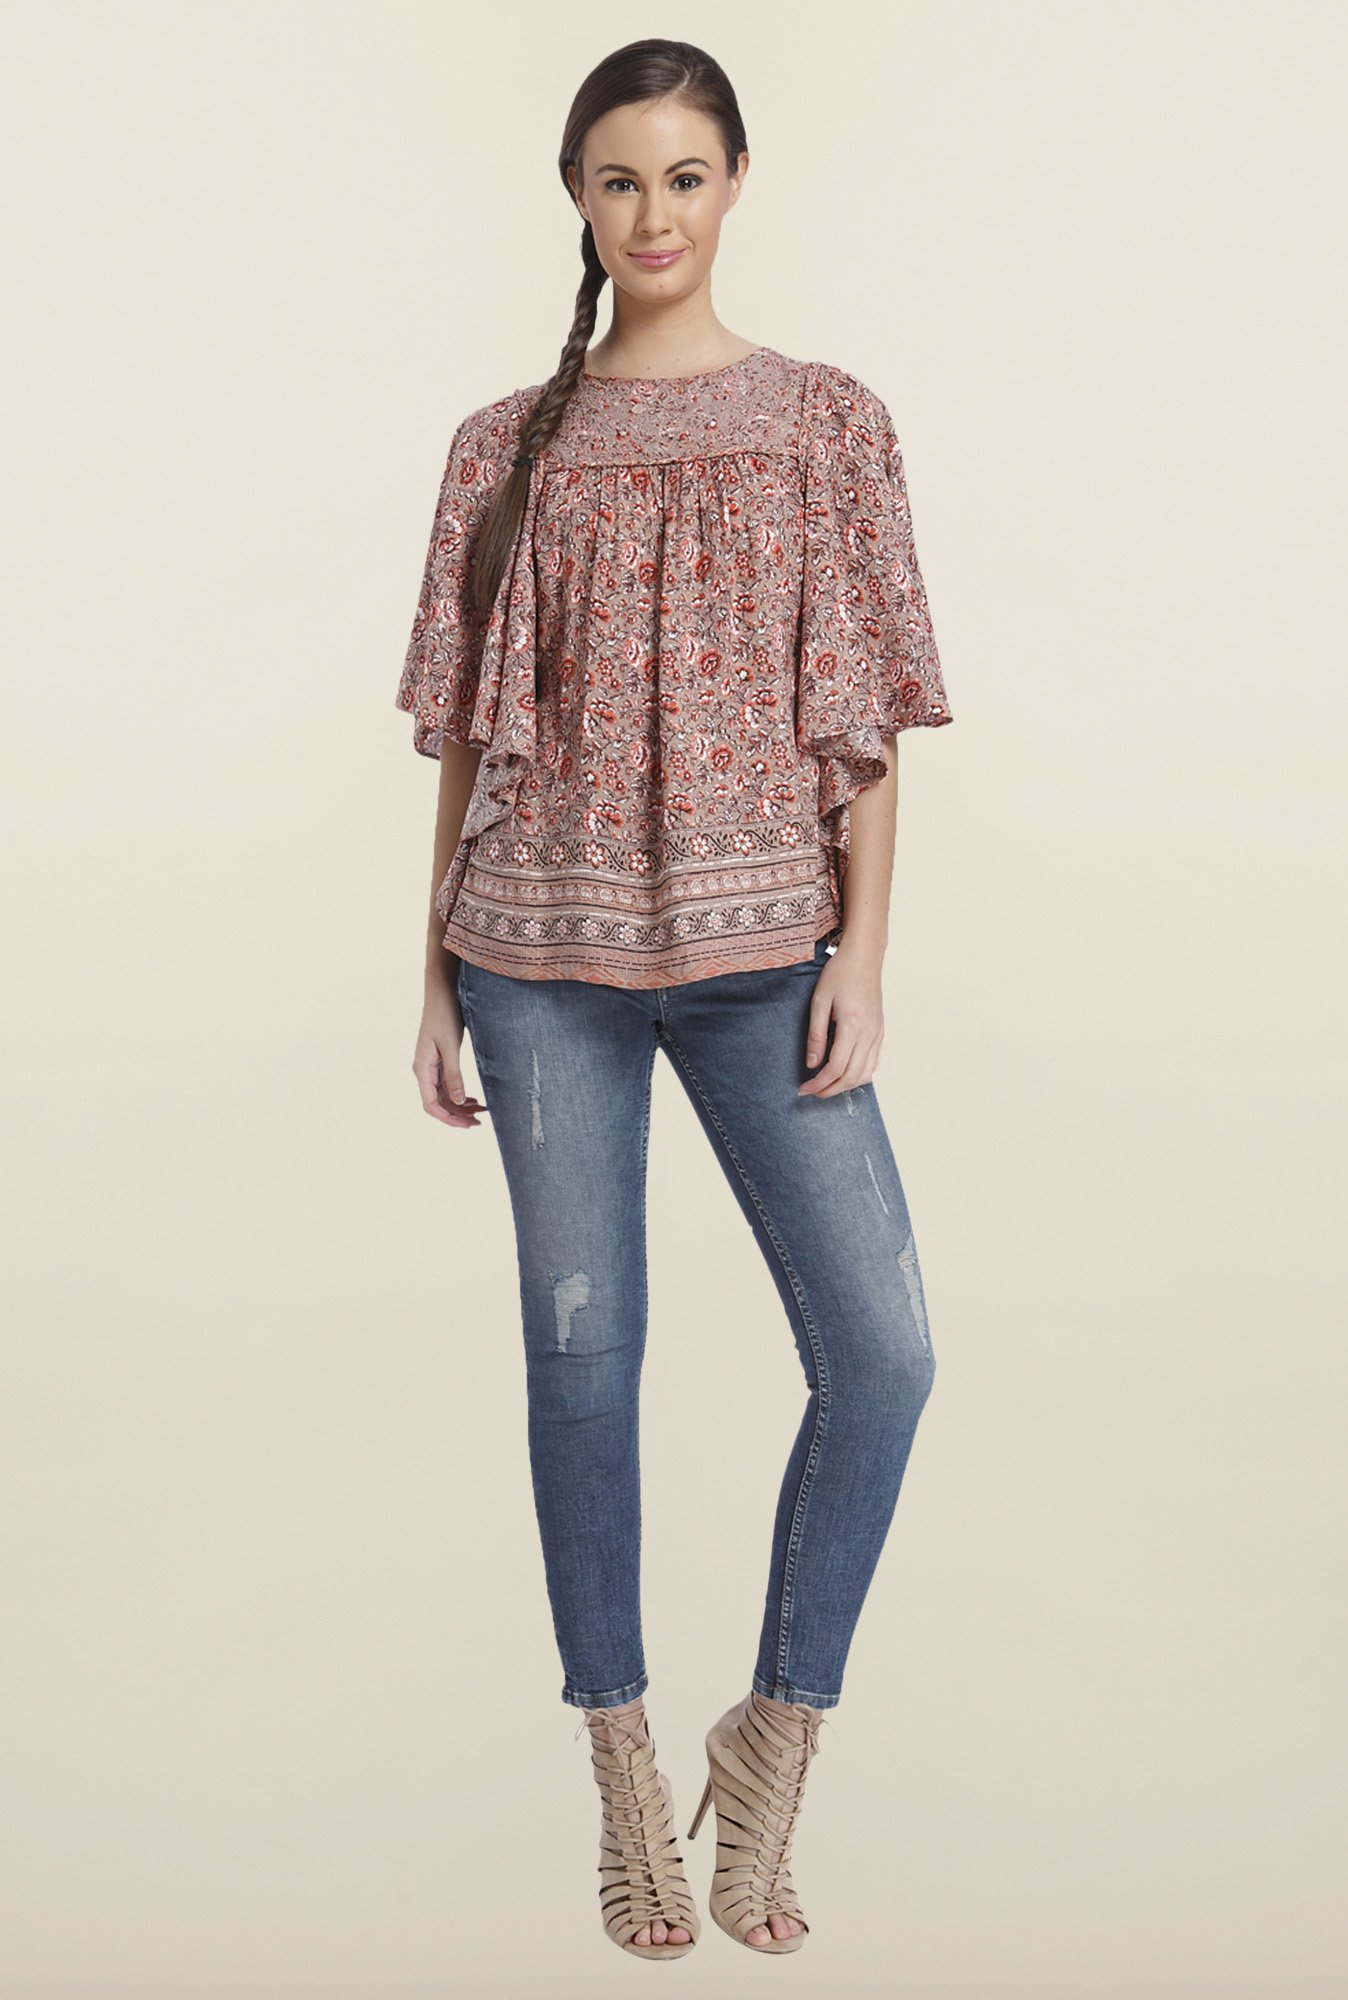 Only Adobe Rose Floral Printed Top